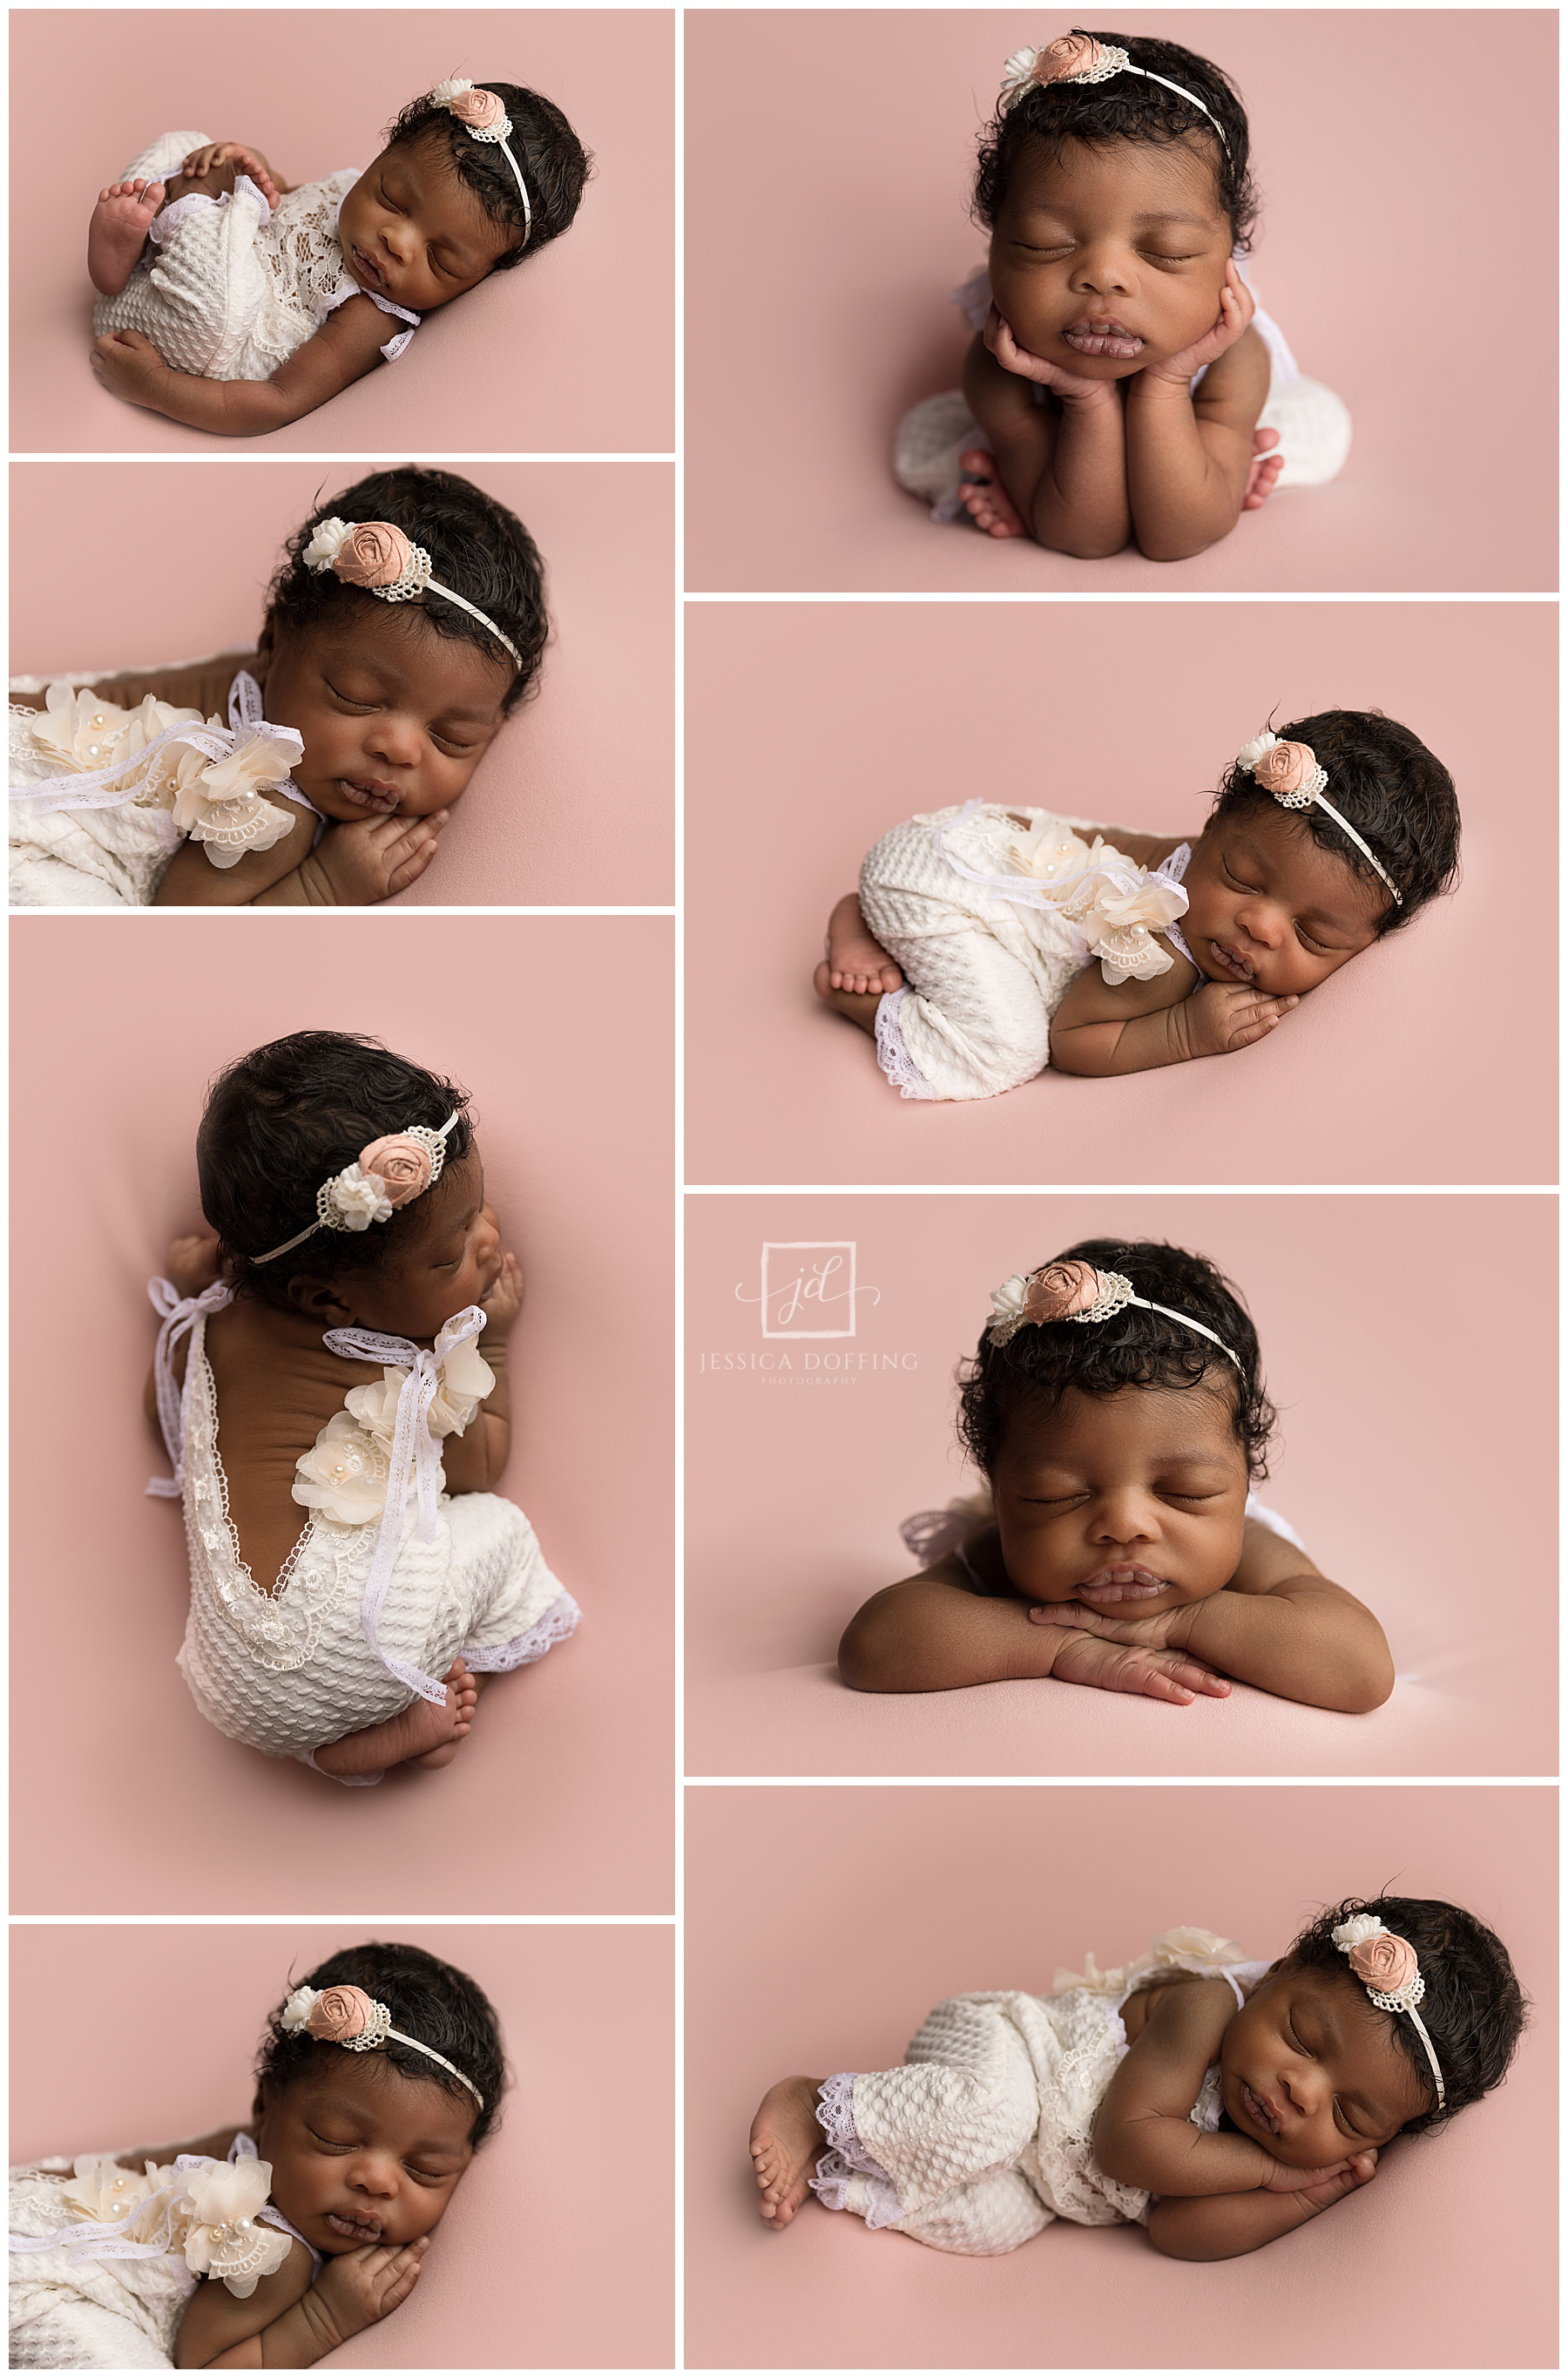 She really perfected every pose I put her in!